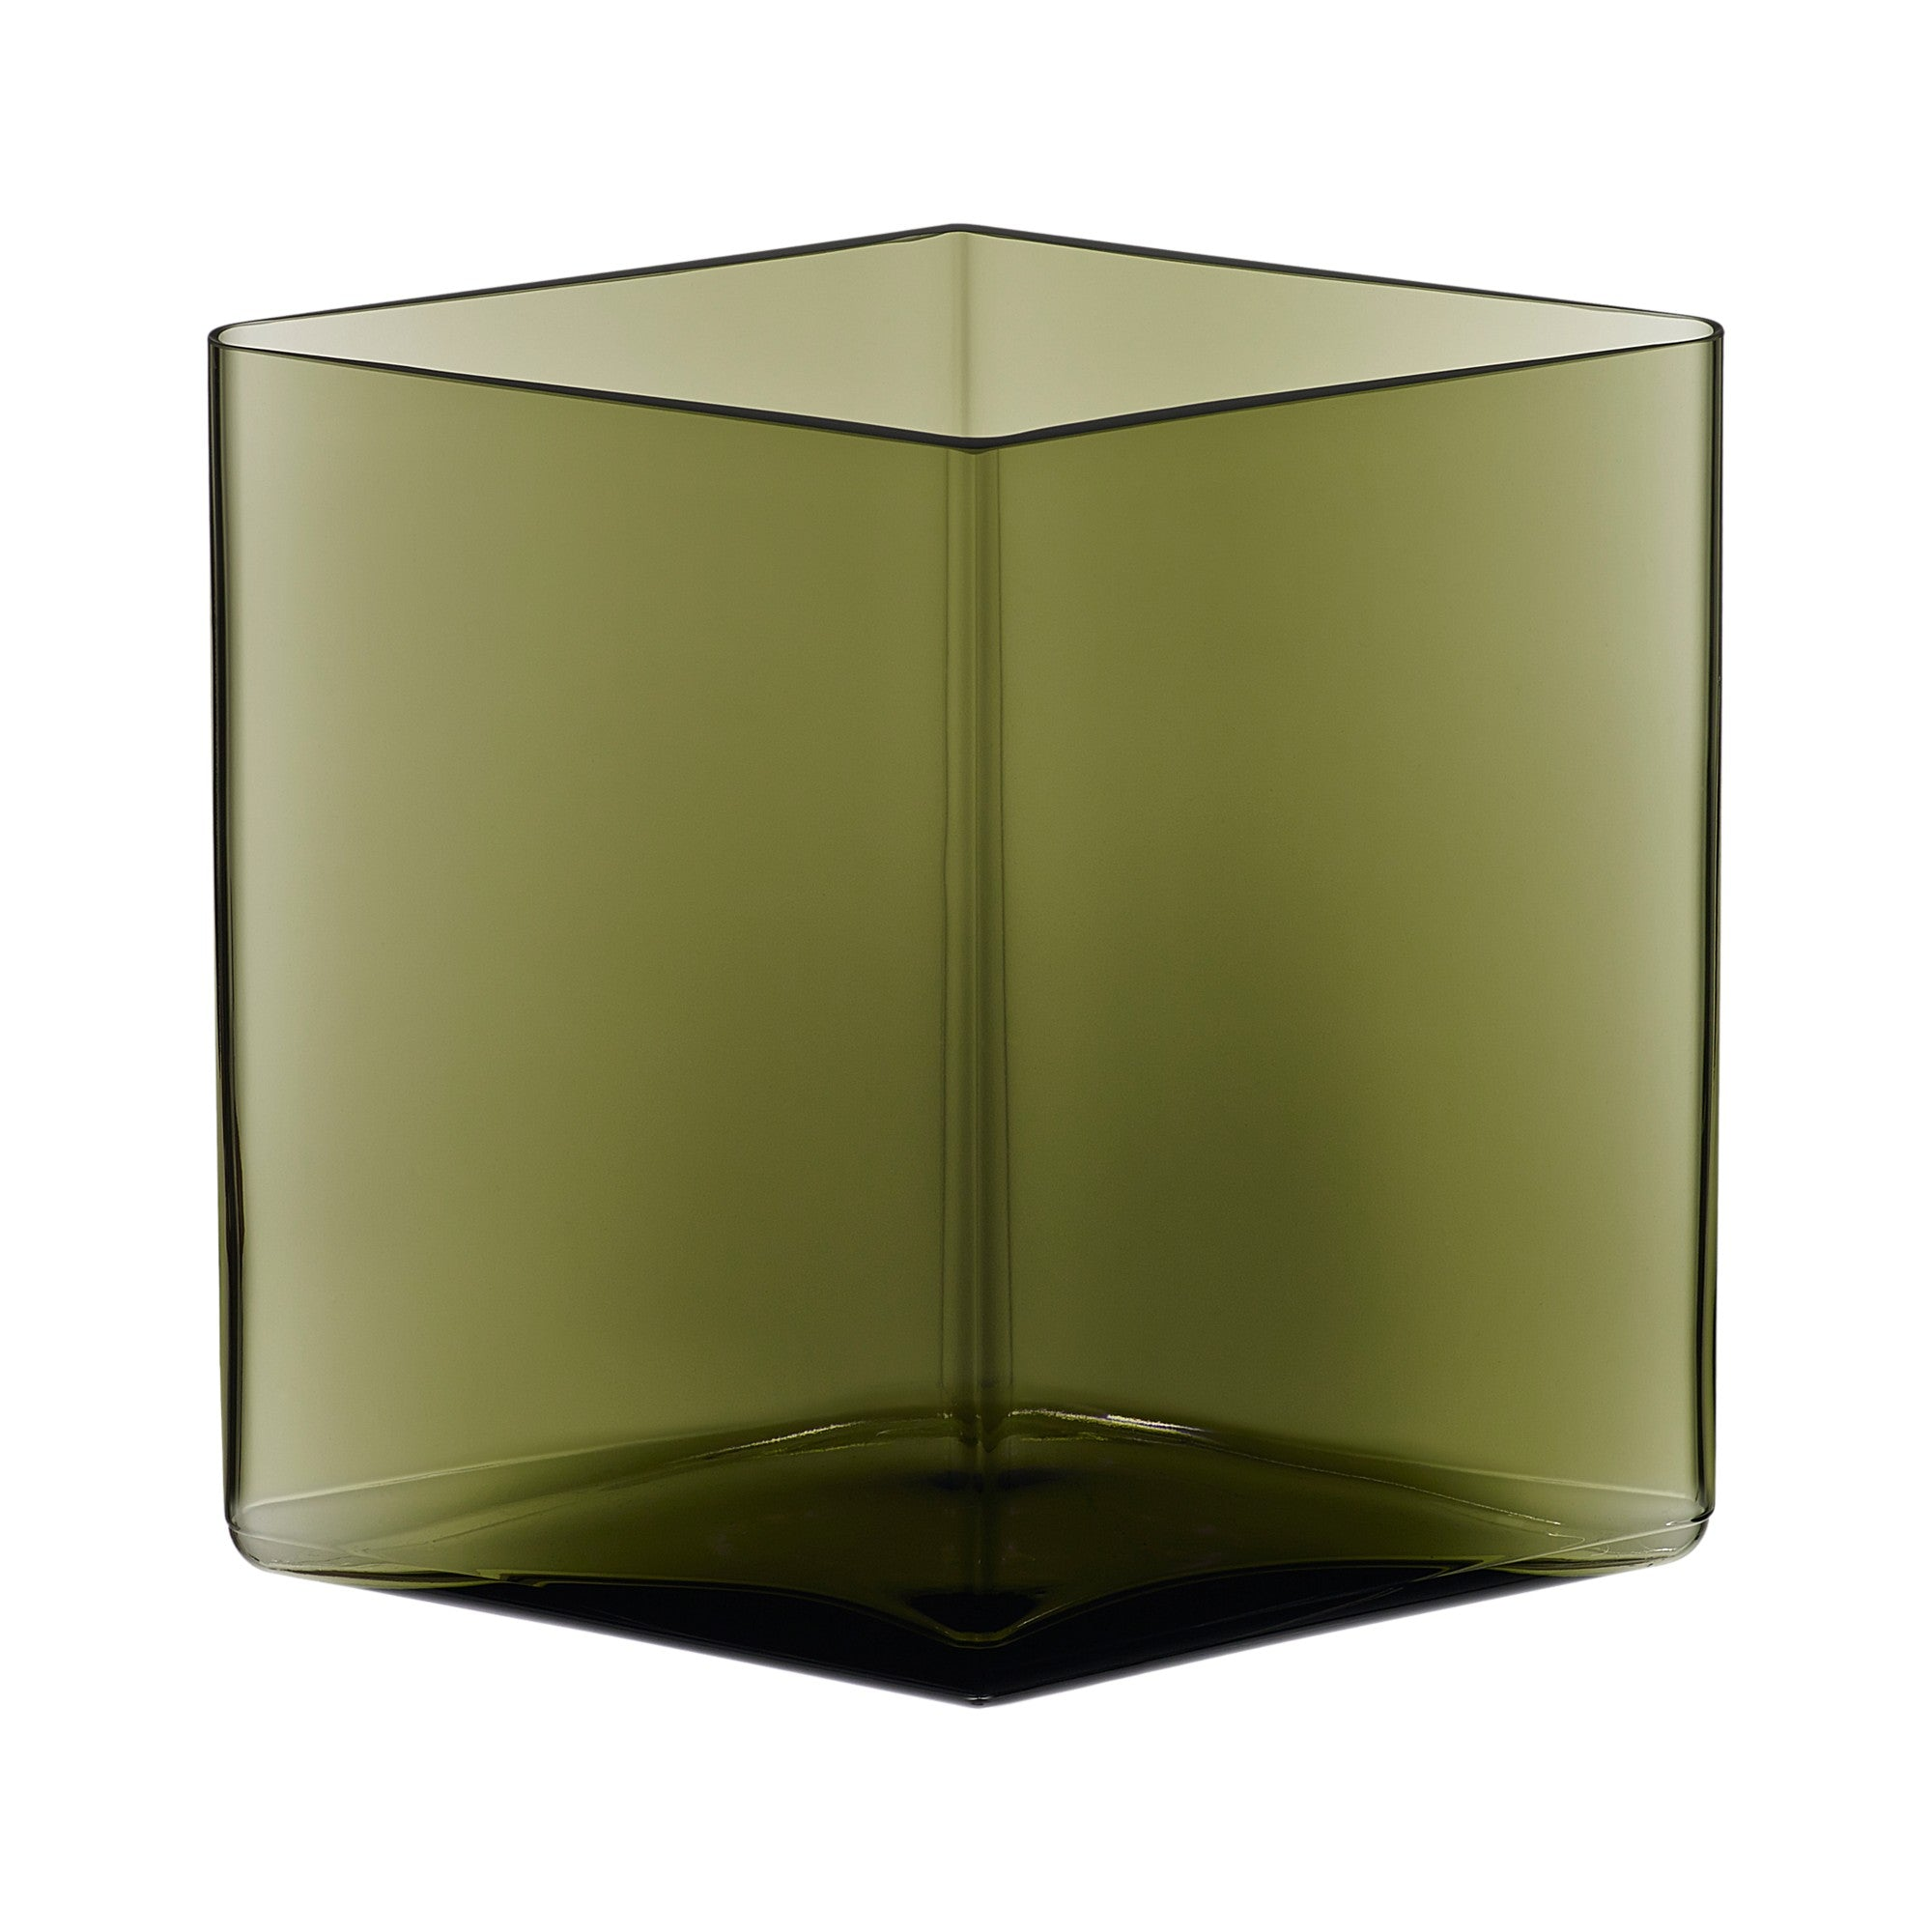 "Ruutu vase 205x180mm / 8.25""x7.25"" moss green"